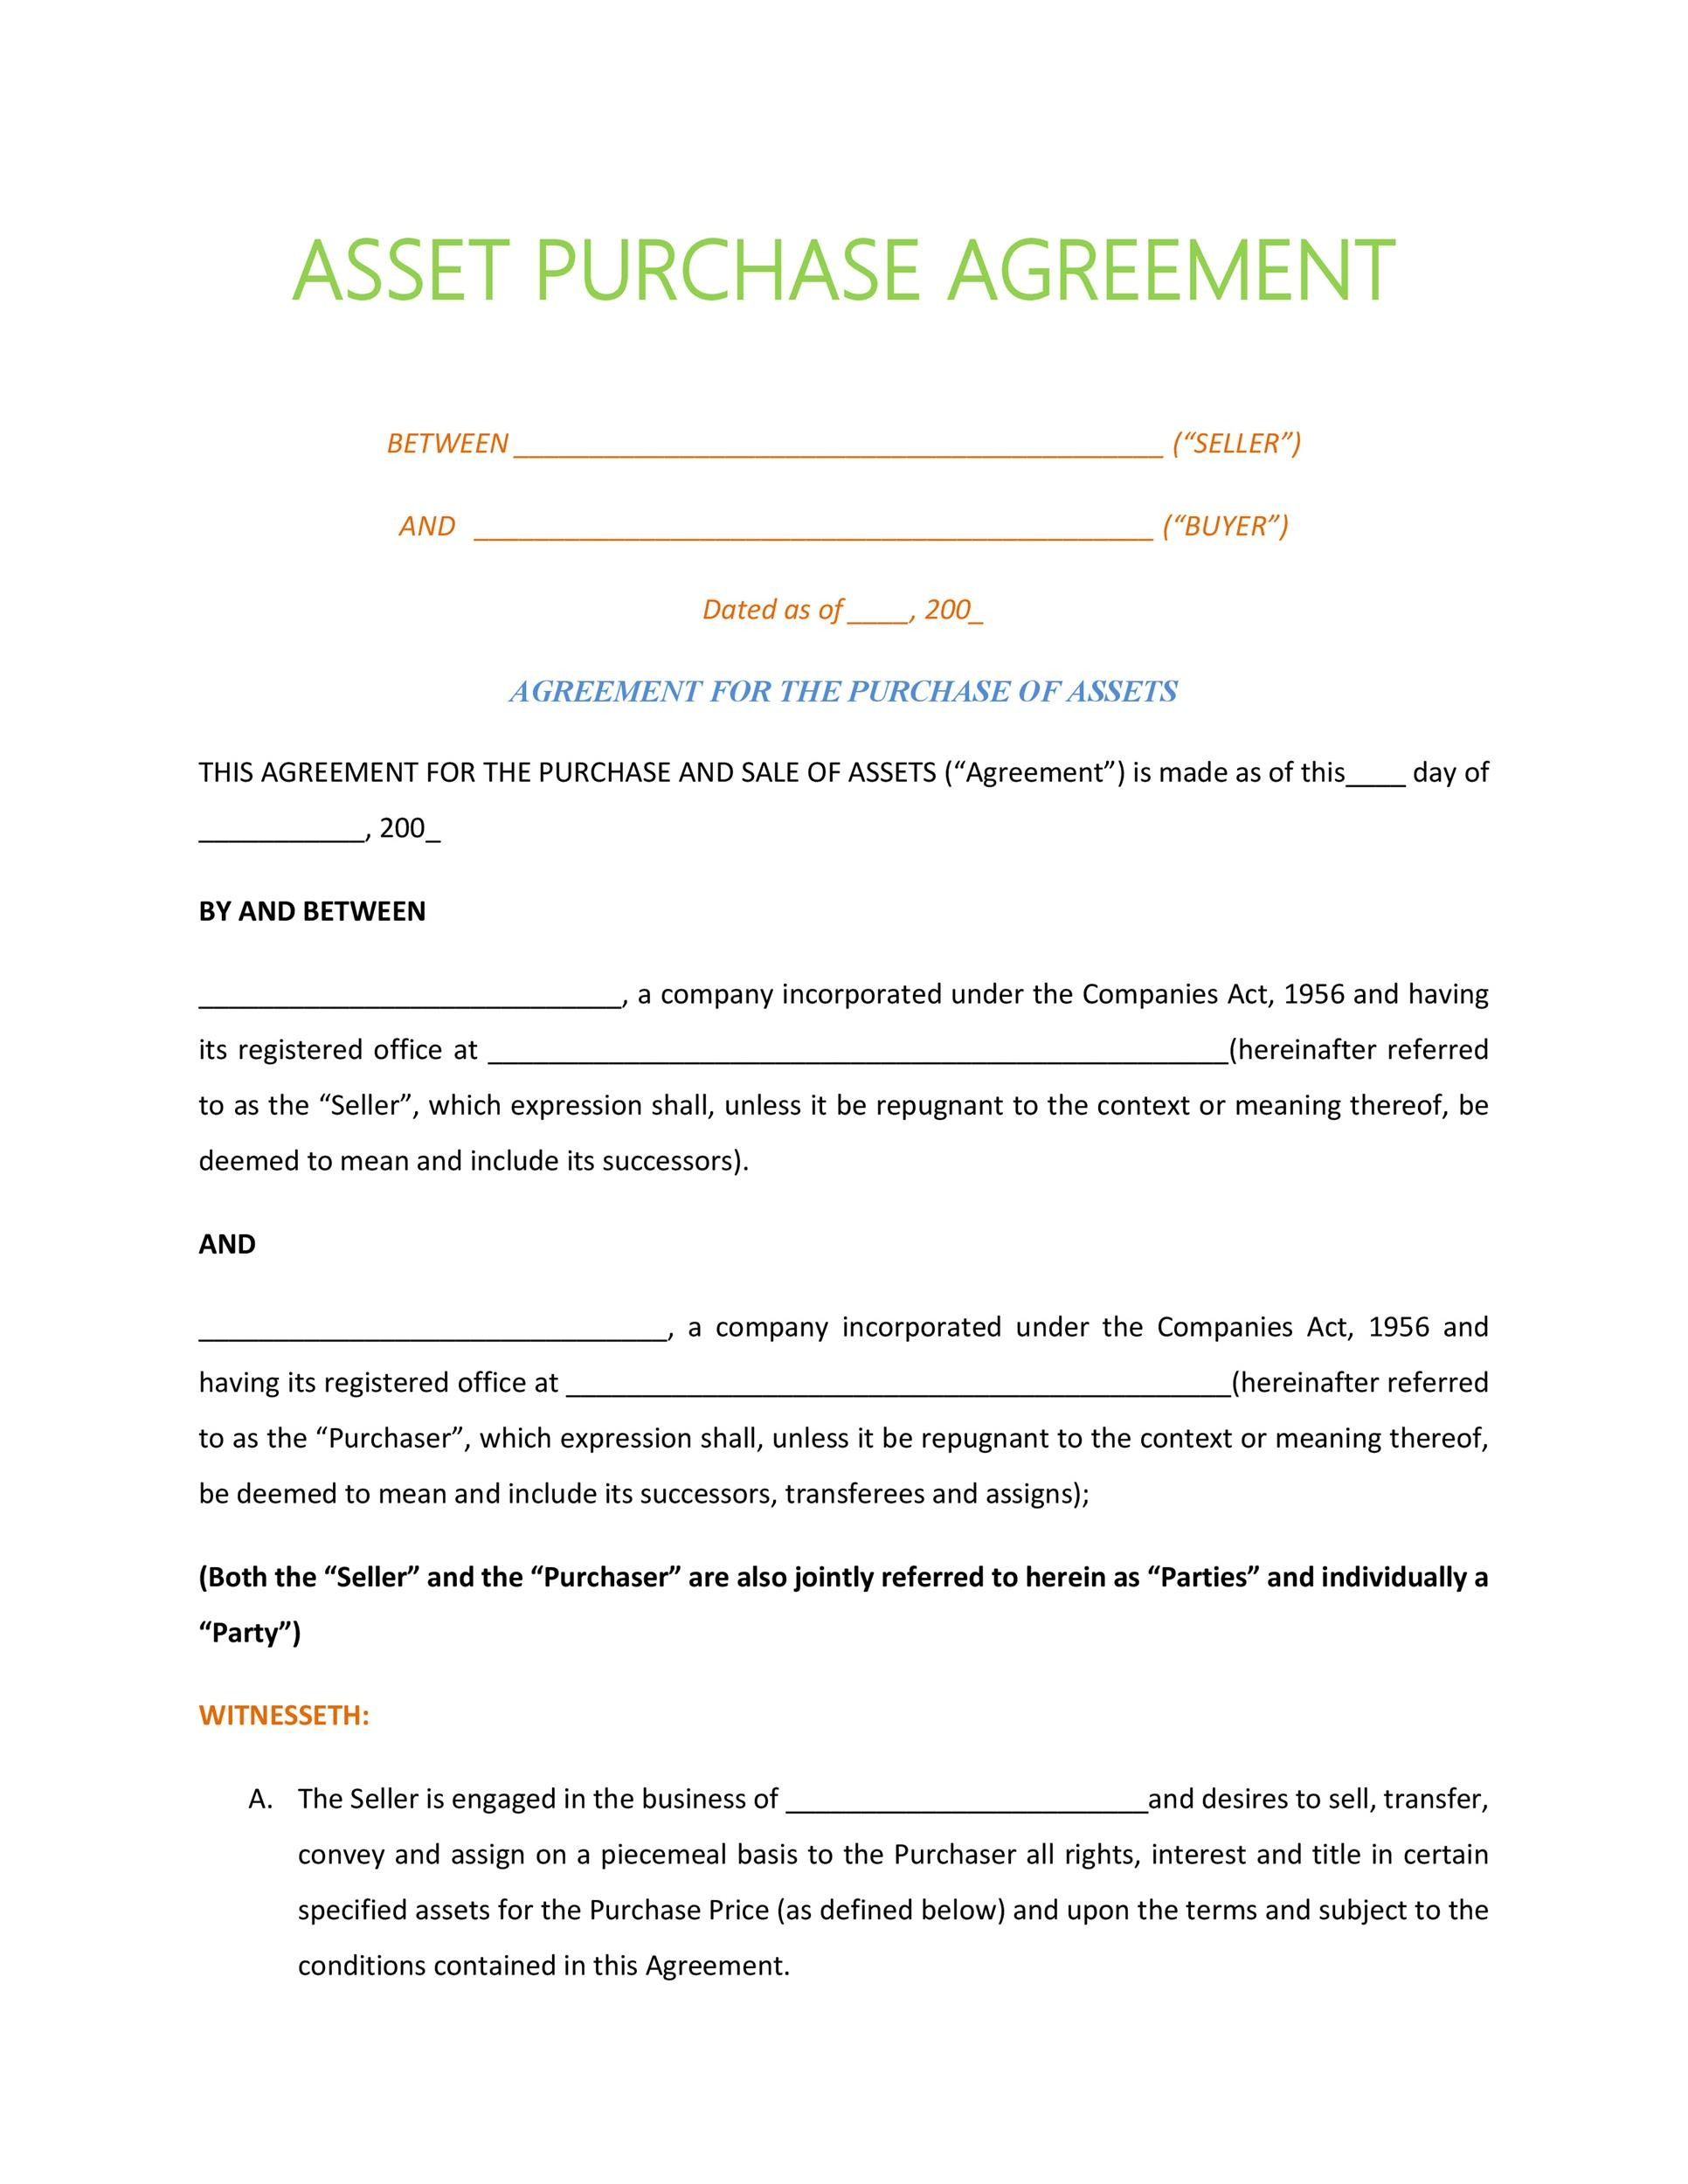 Sample Real Estate Purchase U0026 Sale Agreement Template U2026 Sample Purchase  Agreement Letter And Template. Download Sample Purchase Agreement Letter In  Word ...